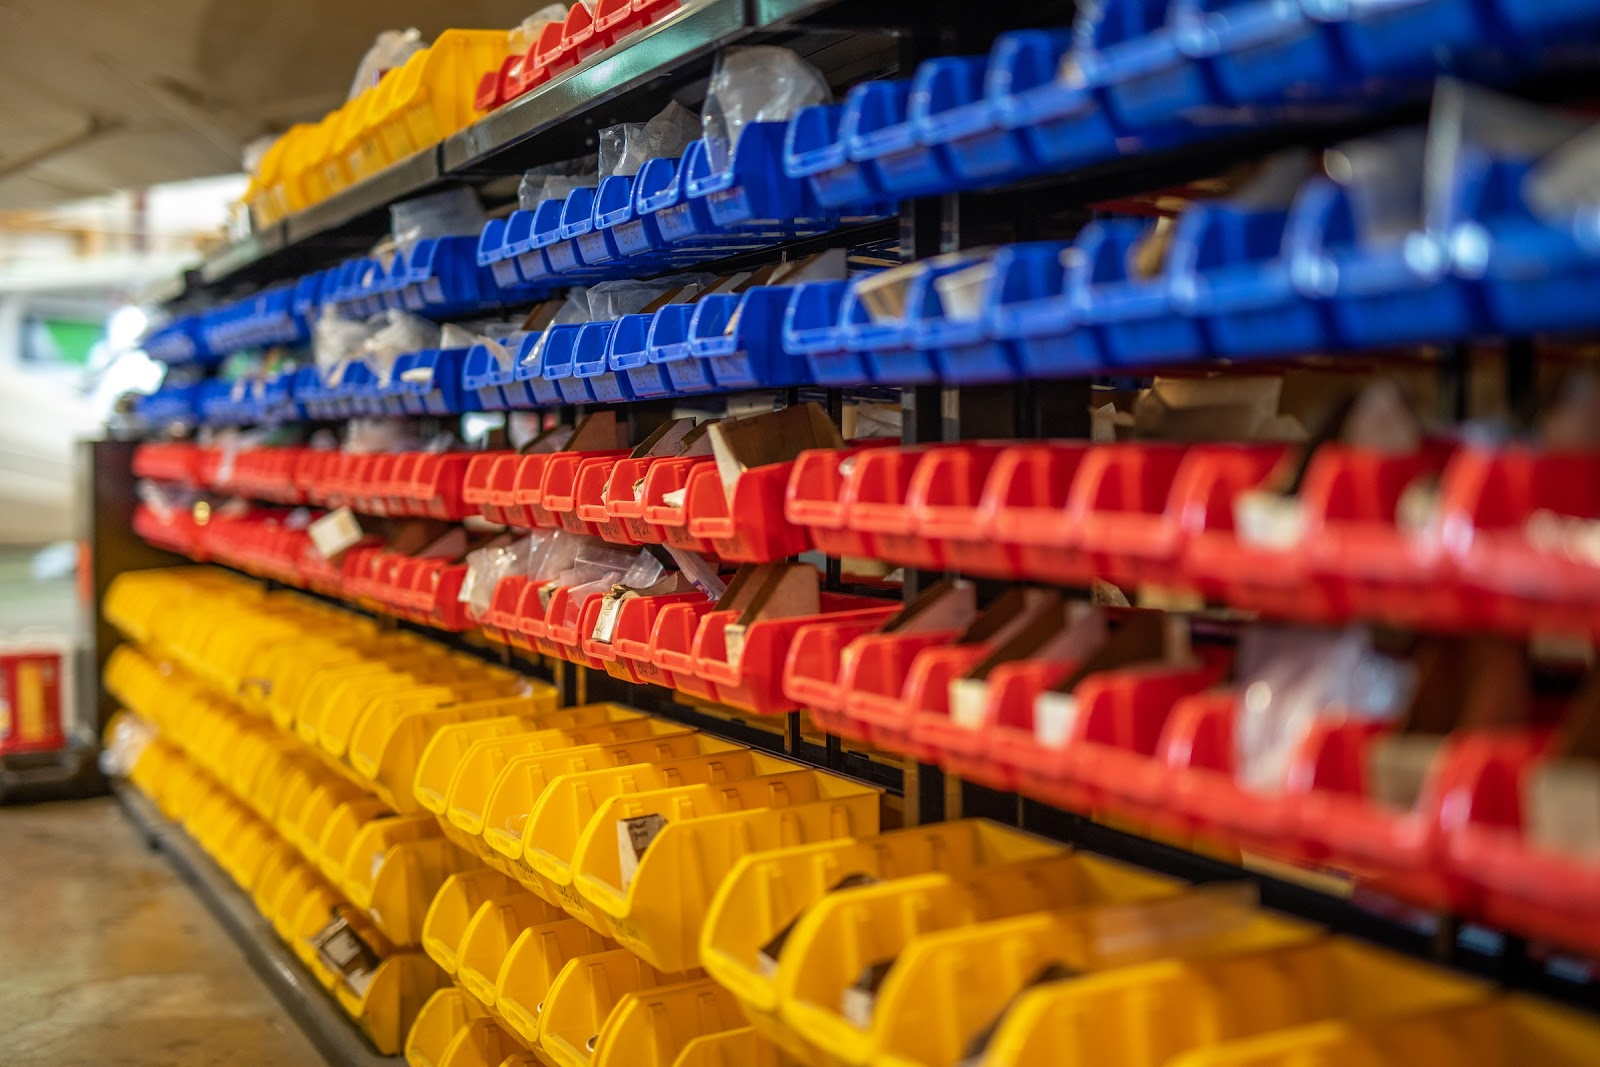 Color-coded rows of storage are arranged neatly on shelves.